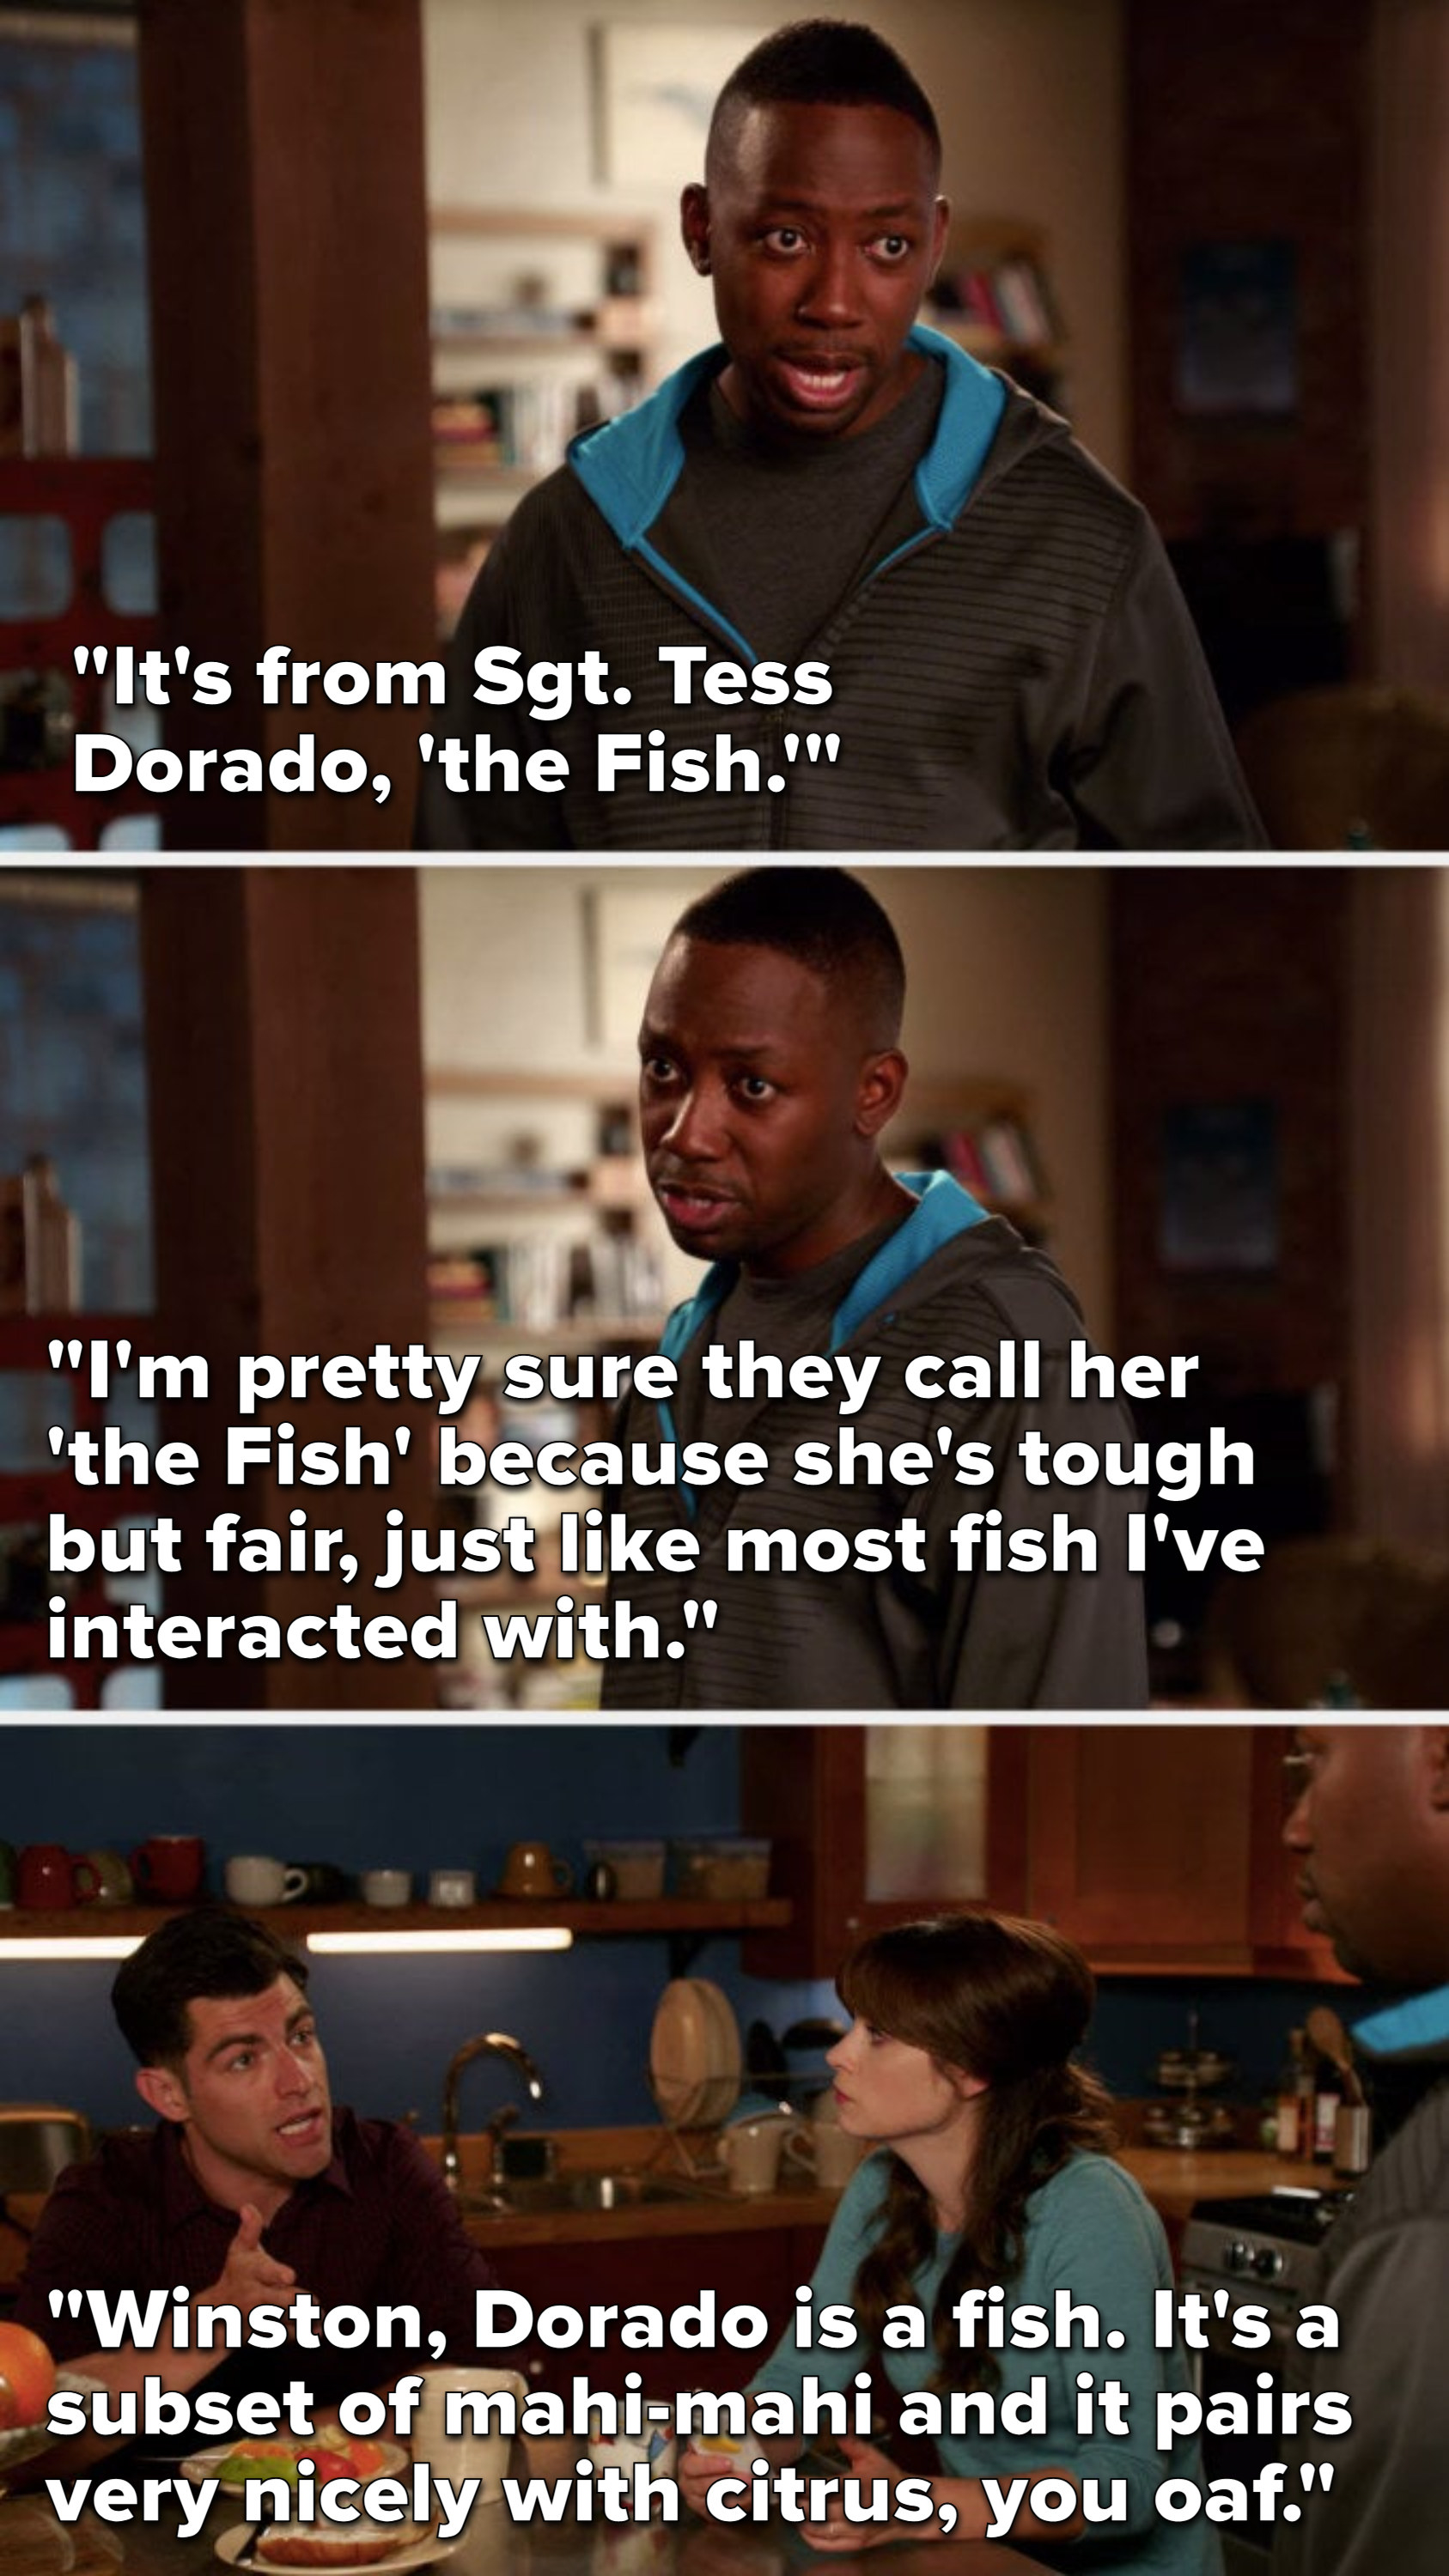 """Winston says, """"It's from Sergeant Tess Dorado, The Fish, I'm think they call her that cause she's tough but fair, like most fish I've interacted with,"""" Schmidt says, """"Dorado is a fish, it's a subset of mahi-mahi and it pairs nicely with citrus, you oaf"""""""